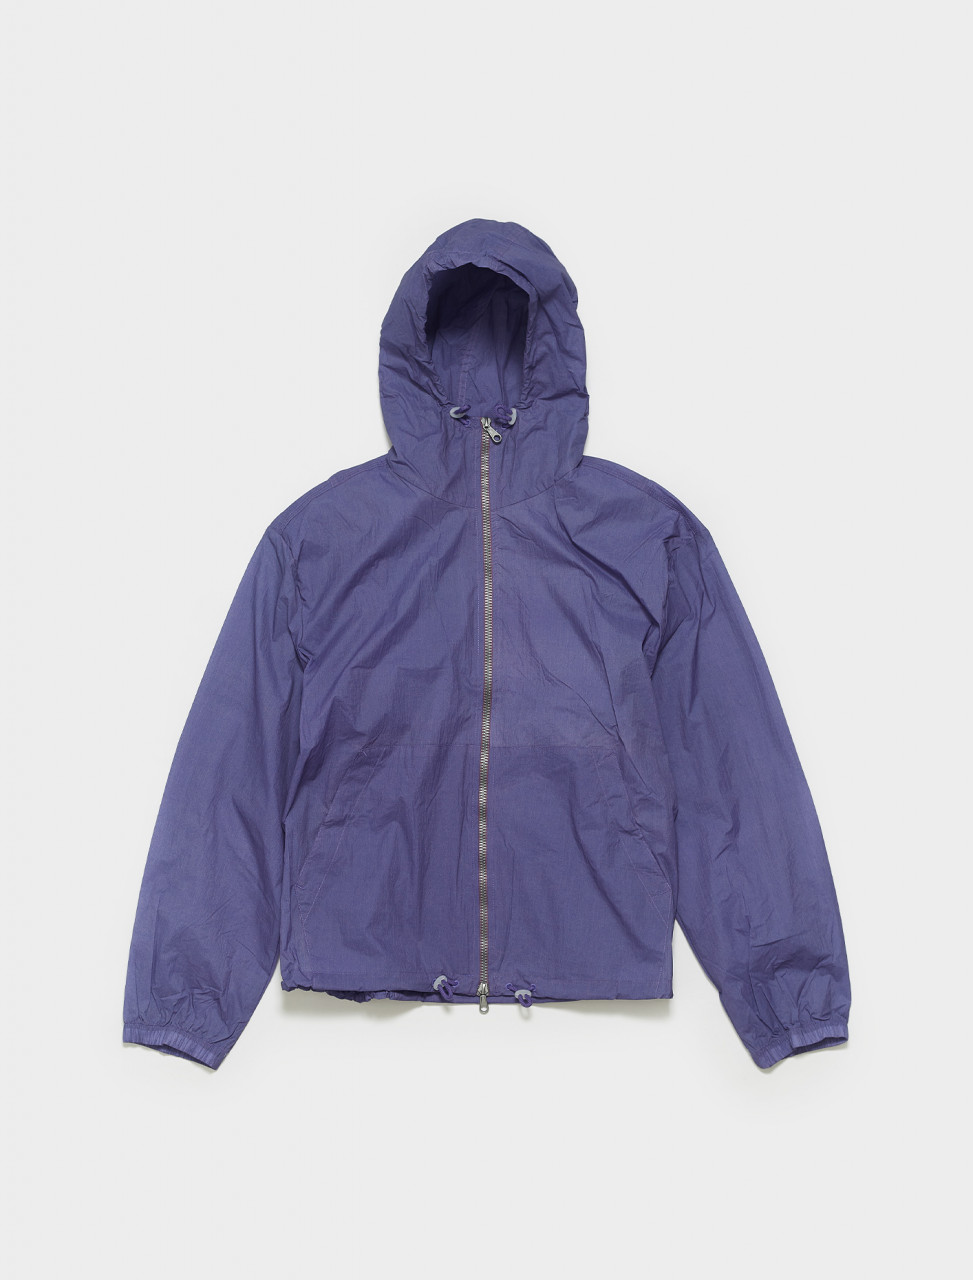 M2211FT OUR LEGACY FACILITY JACKET IN THERMOCHROMIC PURPLE